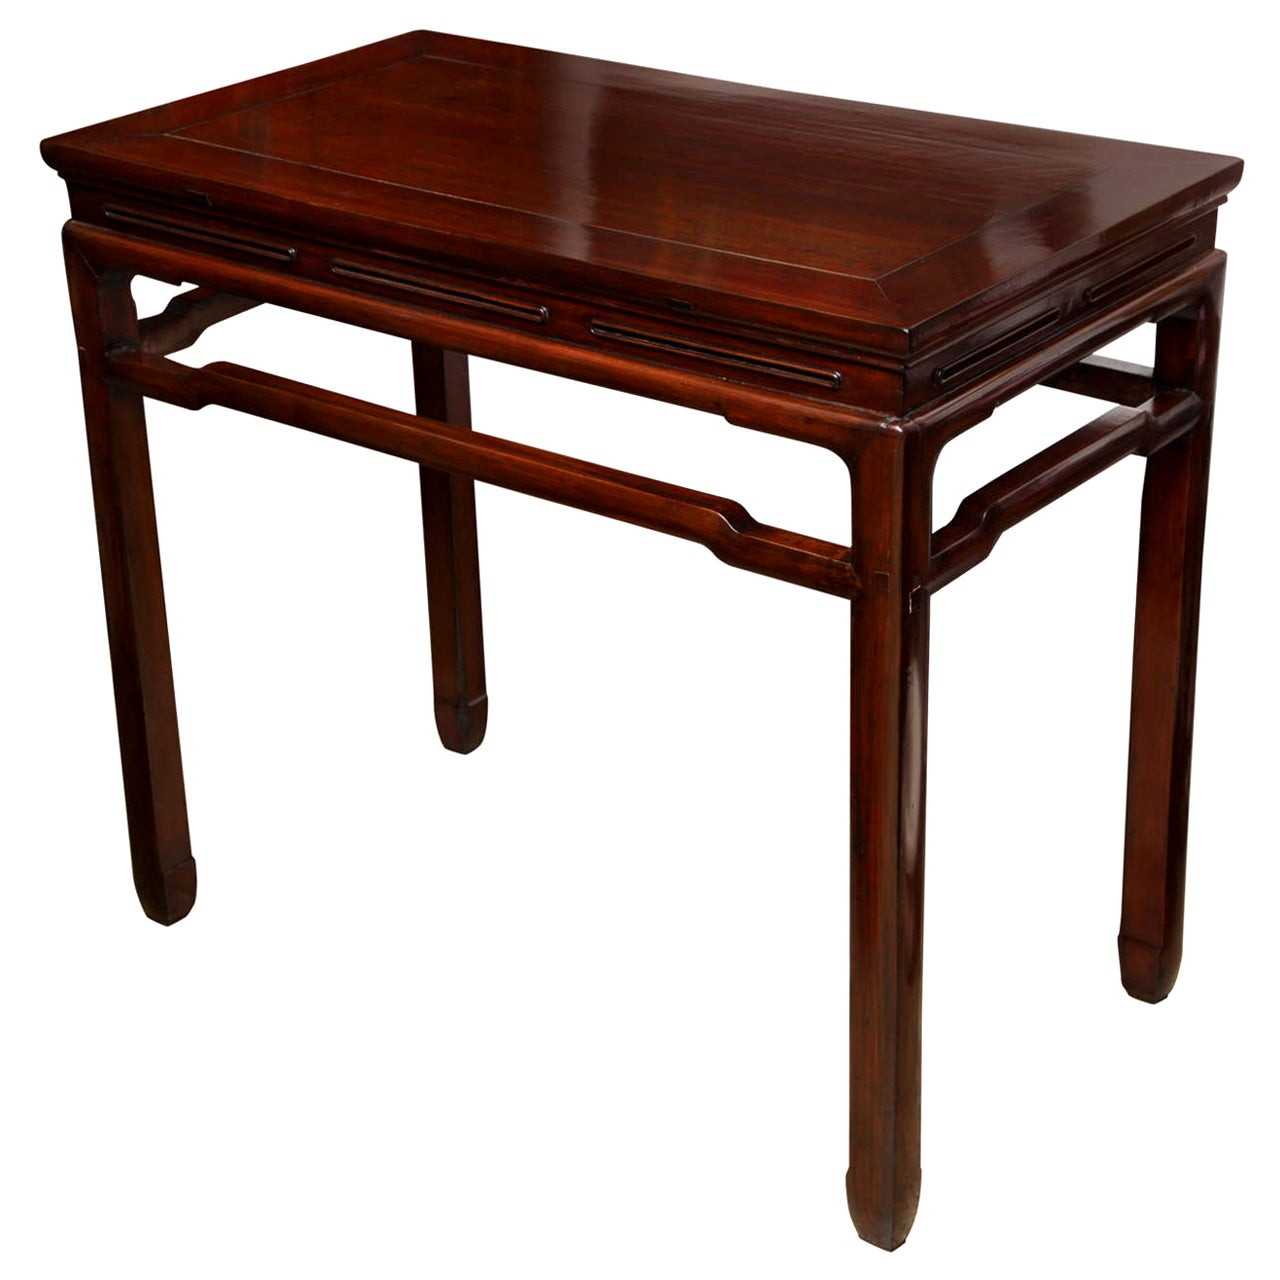 Chinese Elm Wood Wine Table / Console, Mid-20th Century